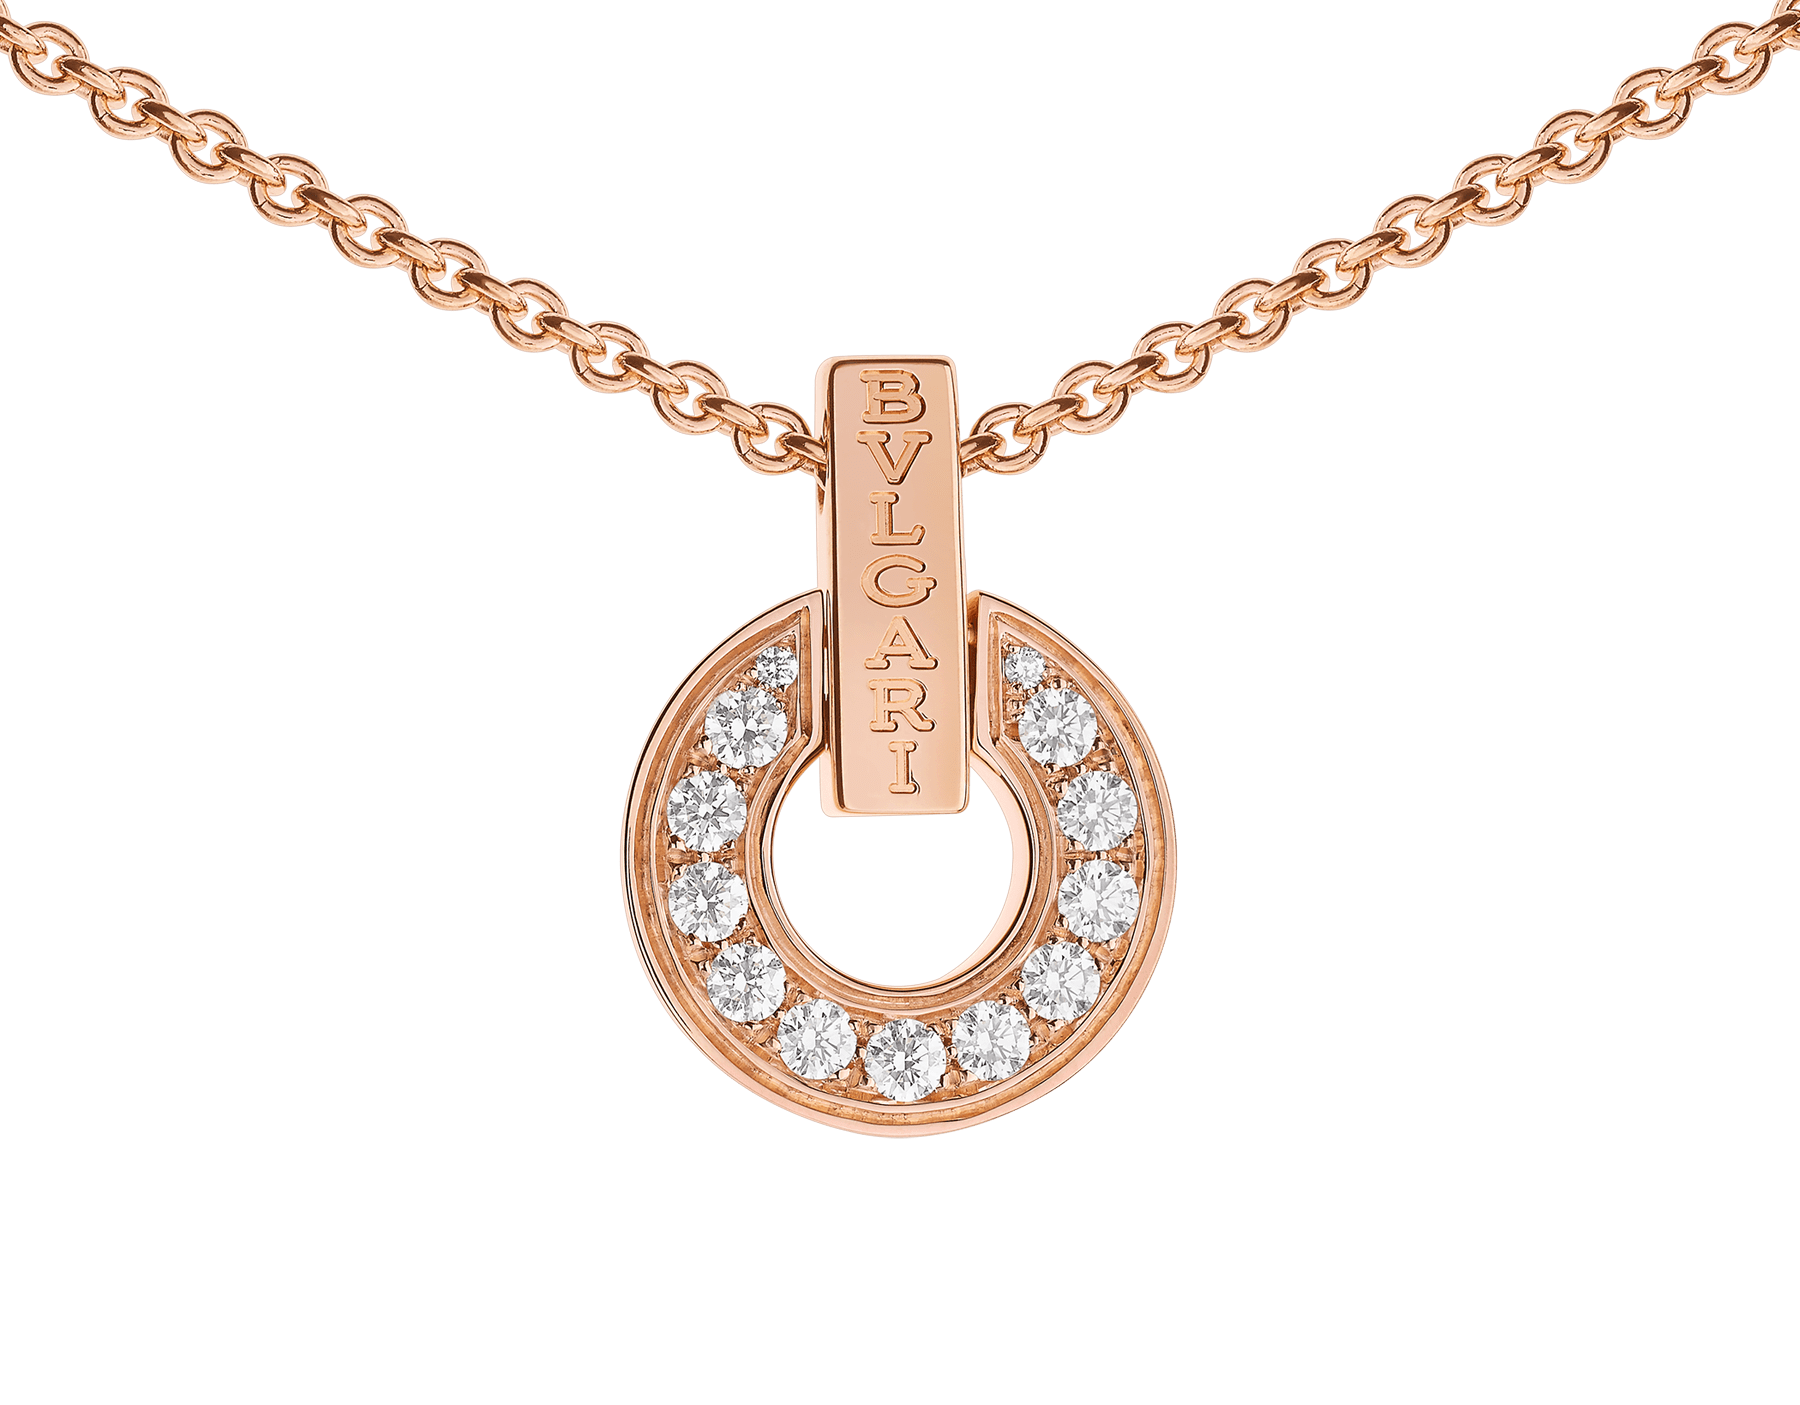 BVLGARI BVLGARI openwork 18 kt rose gold necklace set with full pavé diamonds on the pendant 357312 image 3